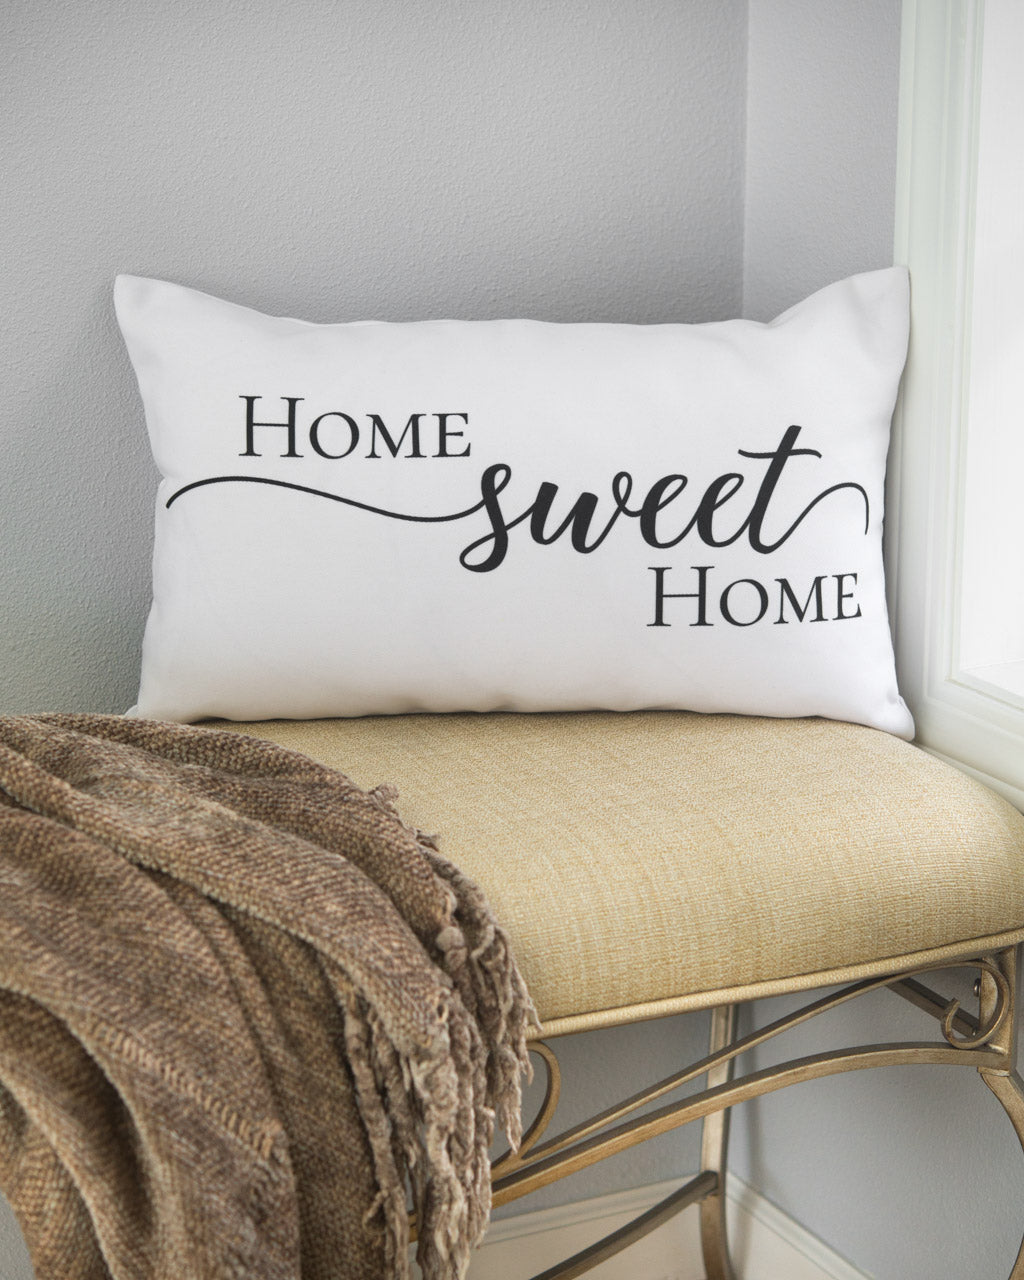 Home sweet home artisan lumbar pillow